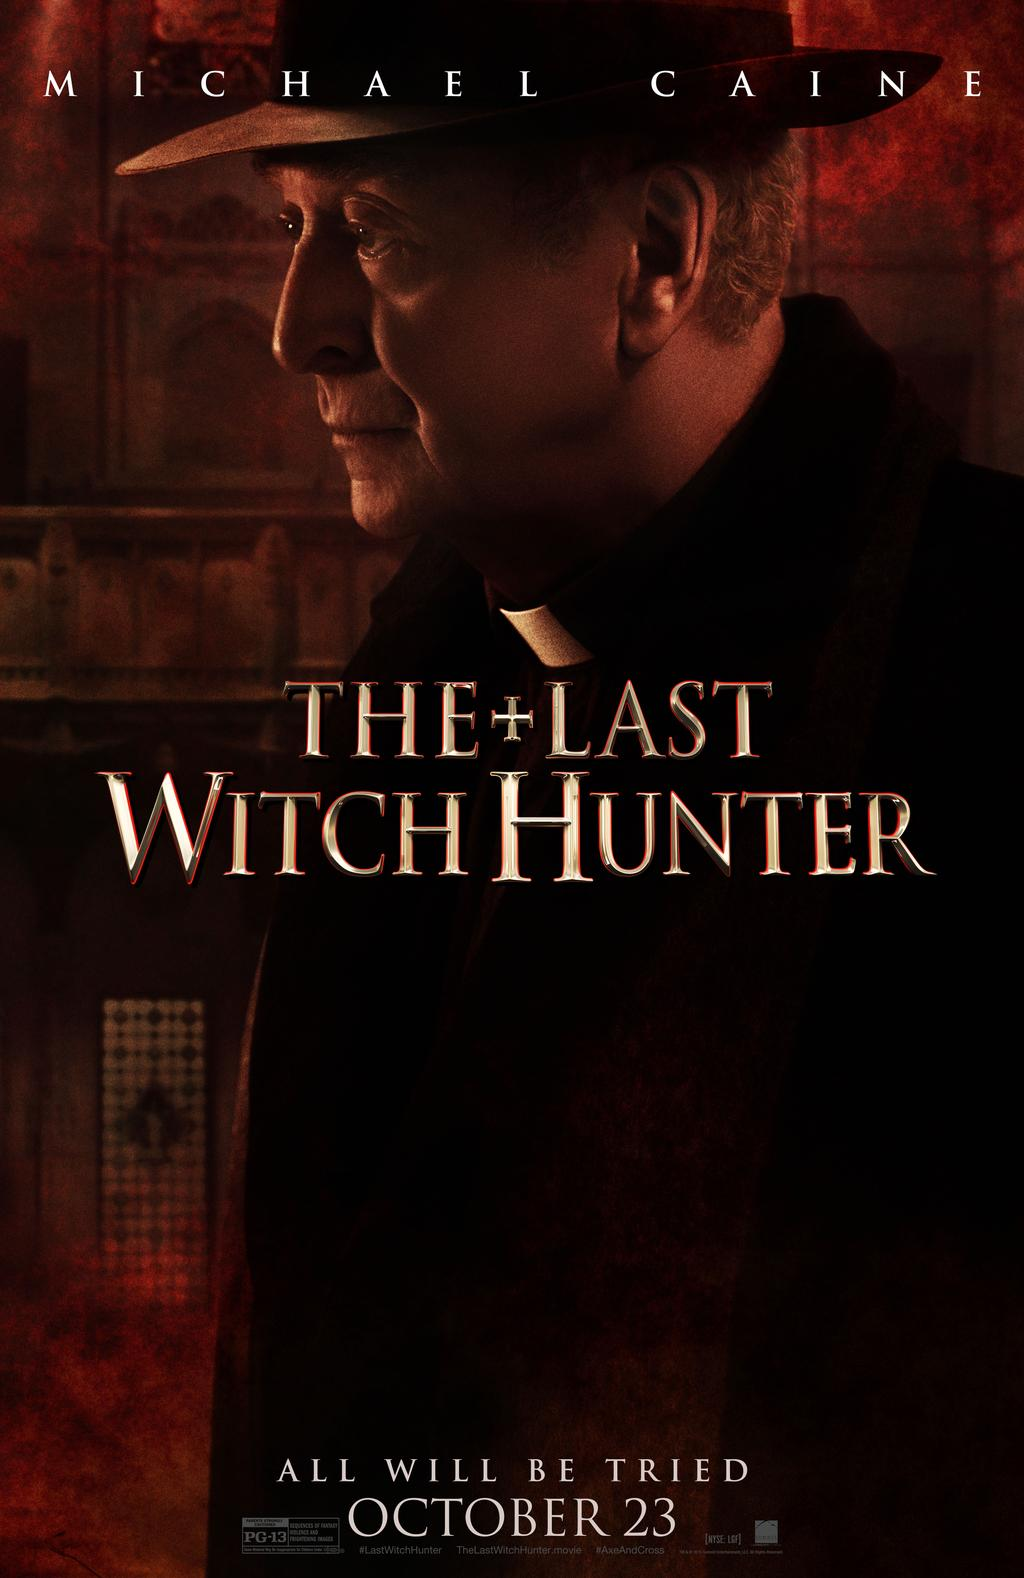 THE LAST WITCH HUNTER-17Setembro2015 (3)